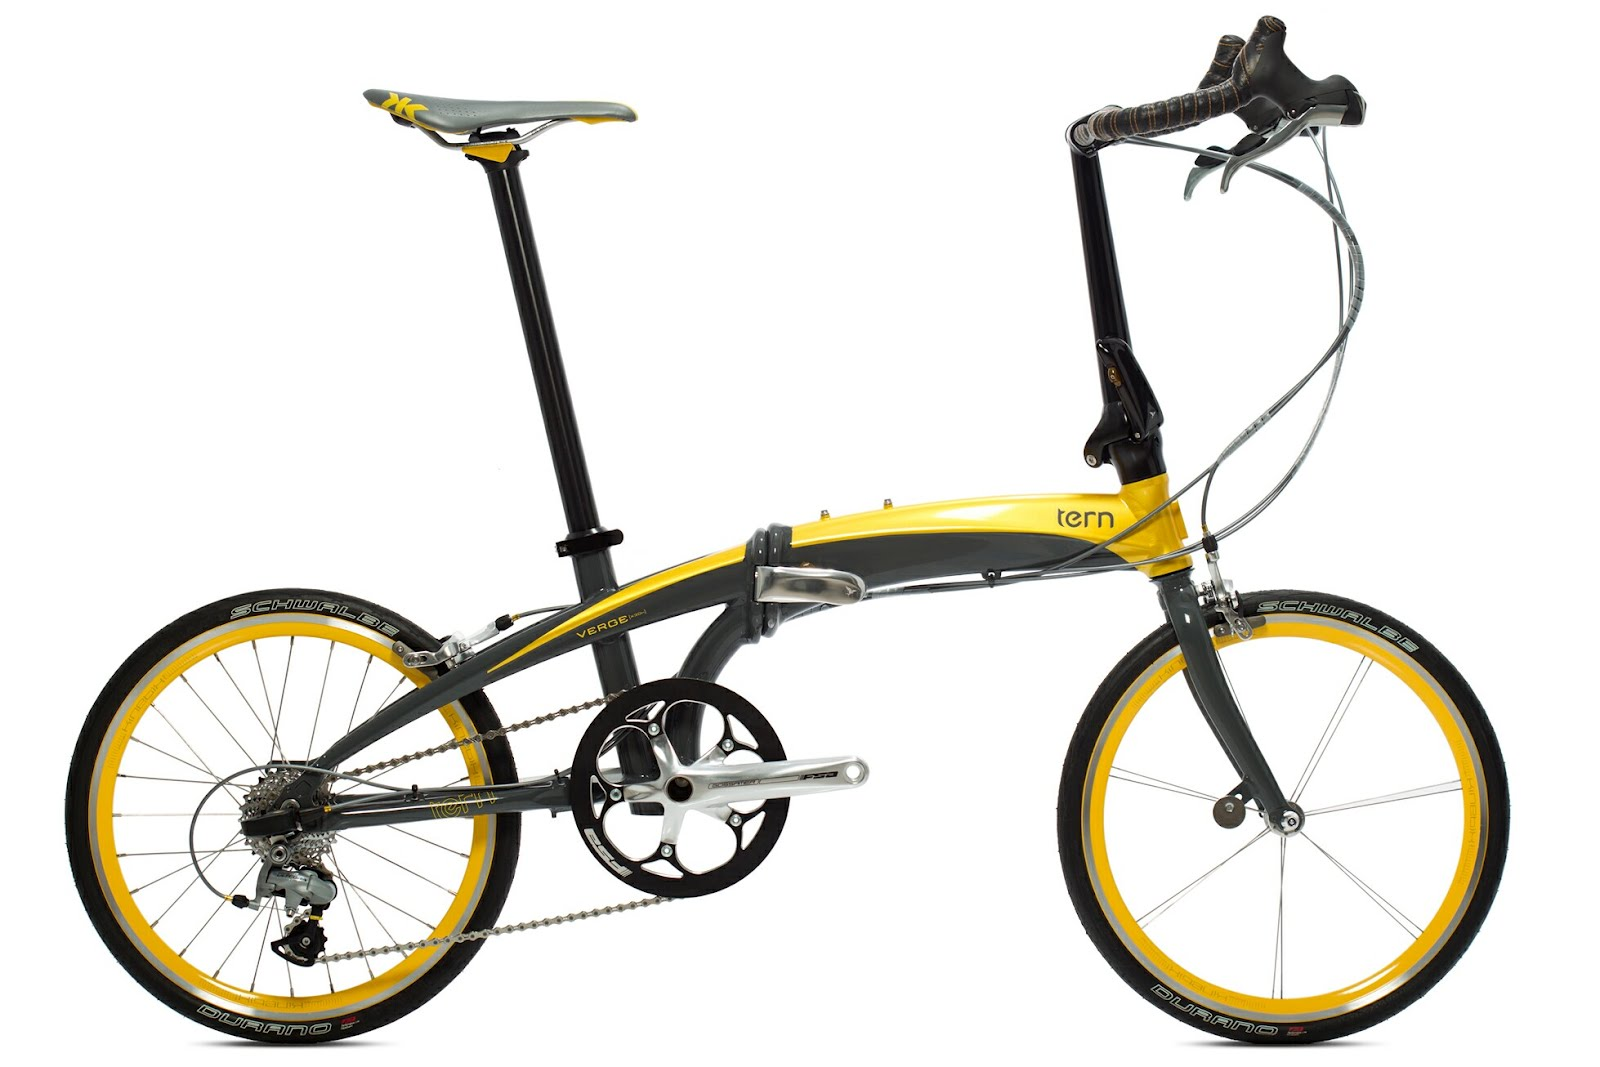 The Folding Bike Review